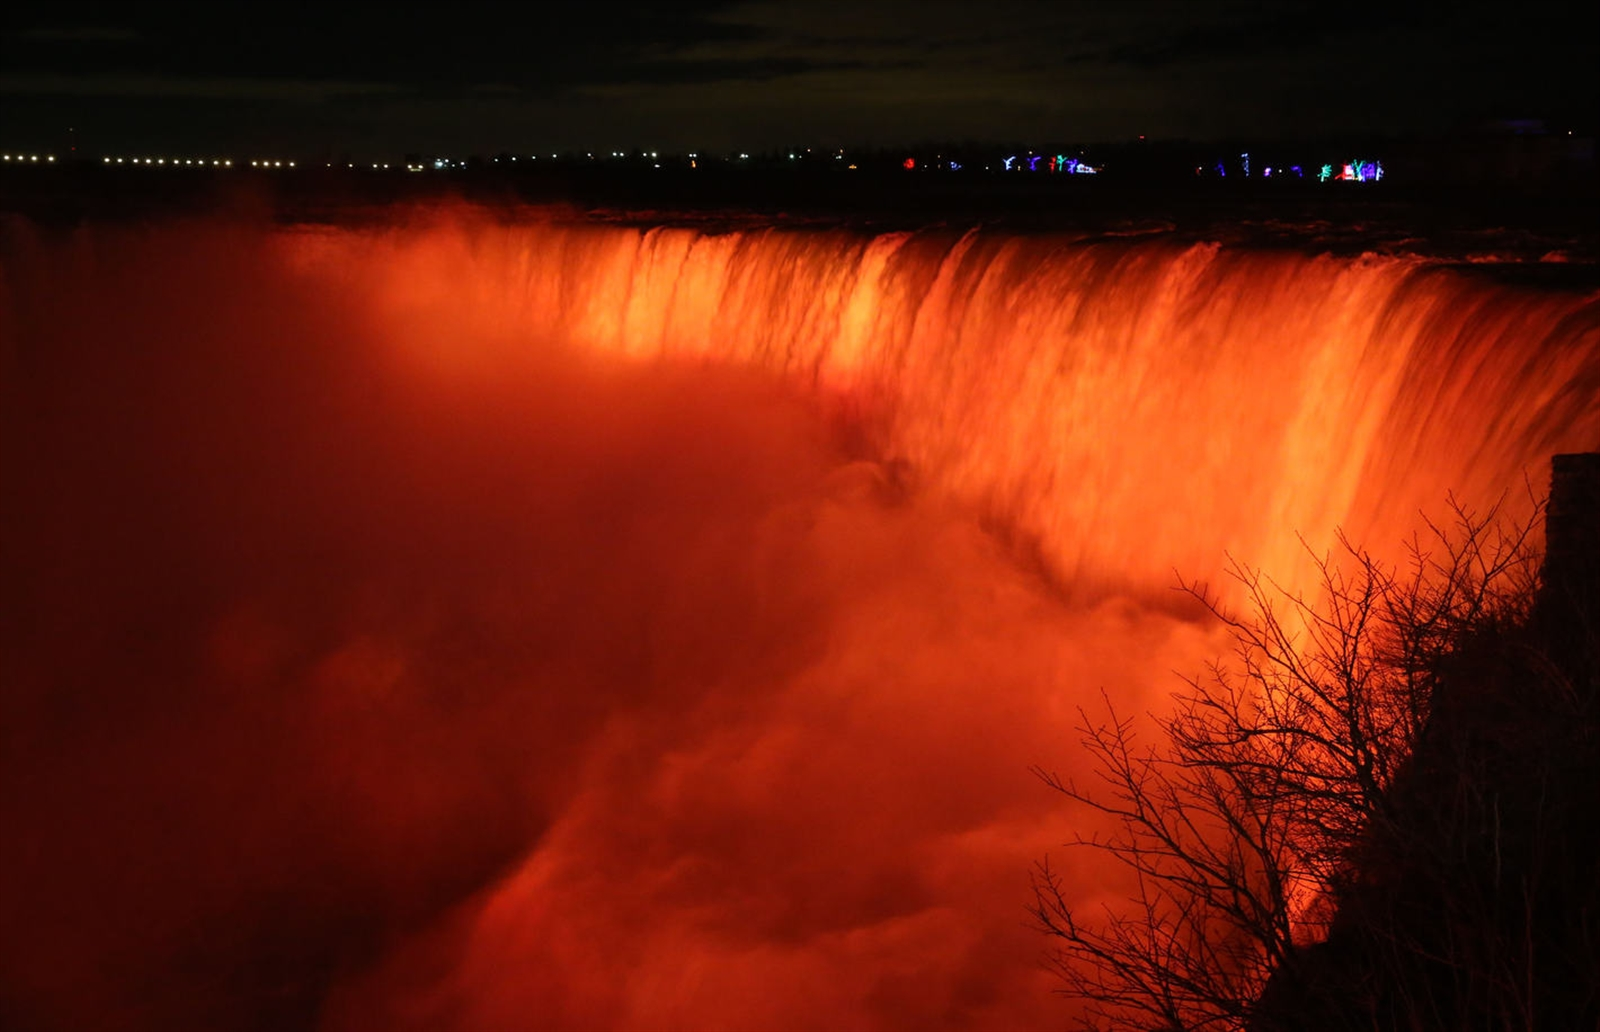 The Horseshoe Falls is lit up in bright orange.